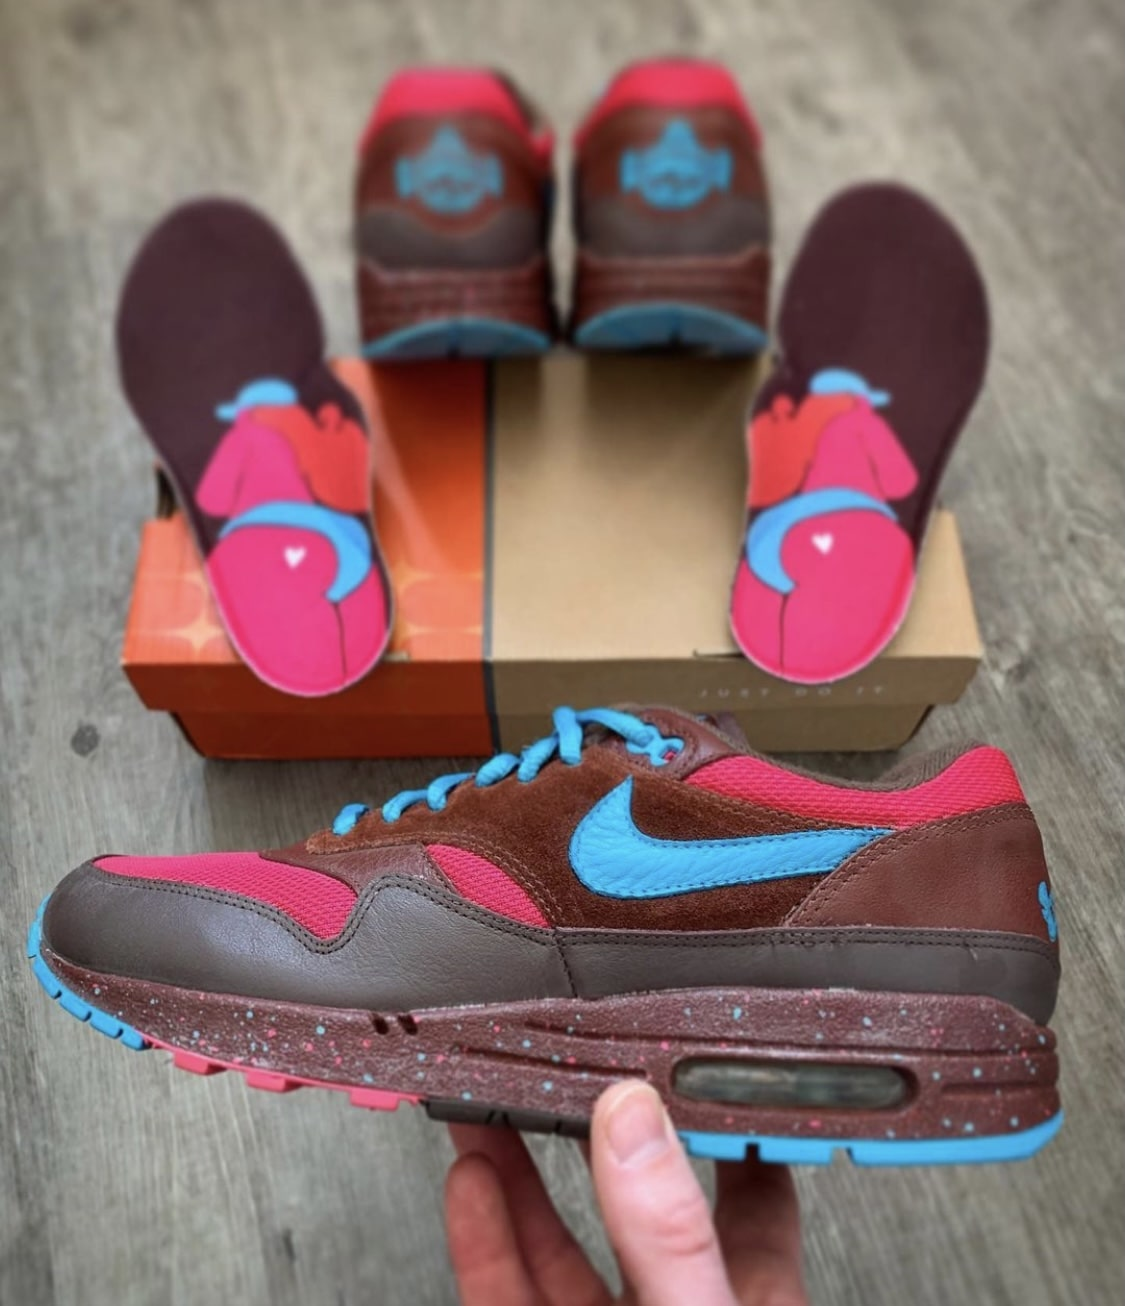 Patta x Nike Air Max 1 Amsterdam - @sjwsneakers Sneakerplaats interview